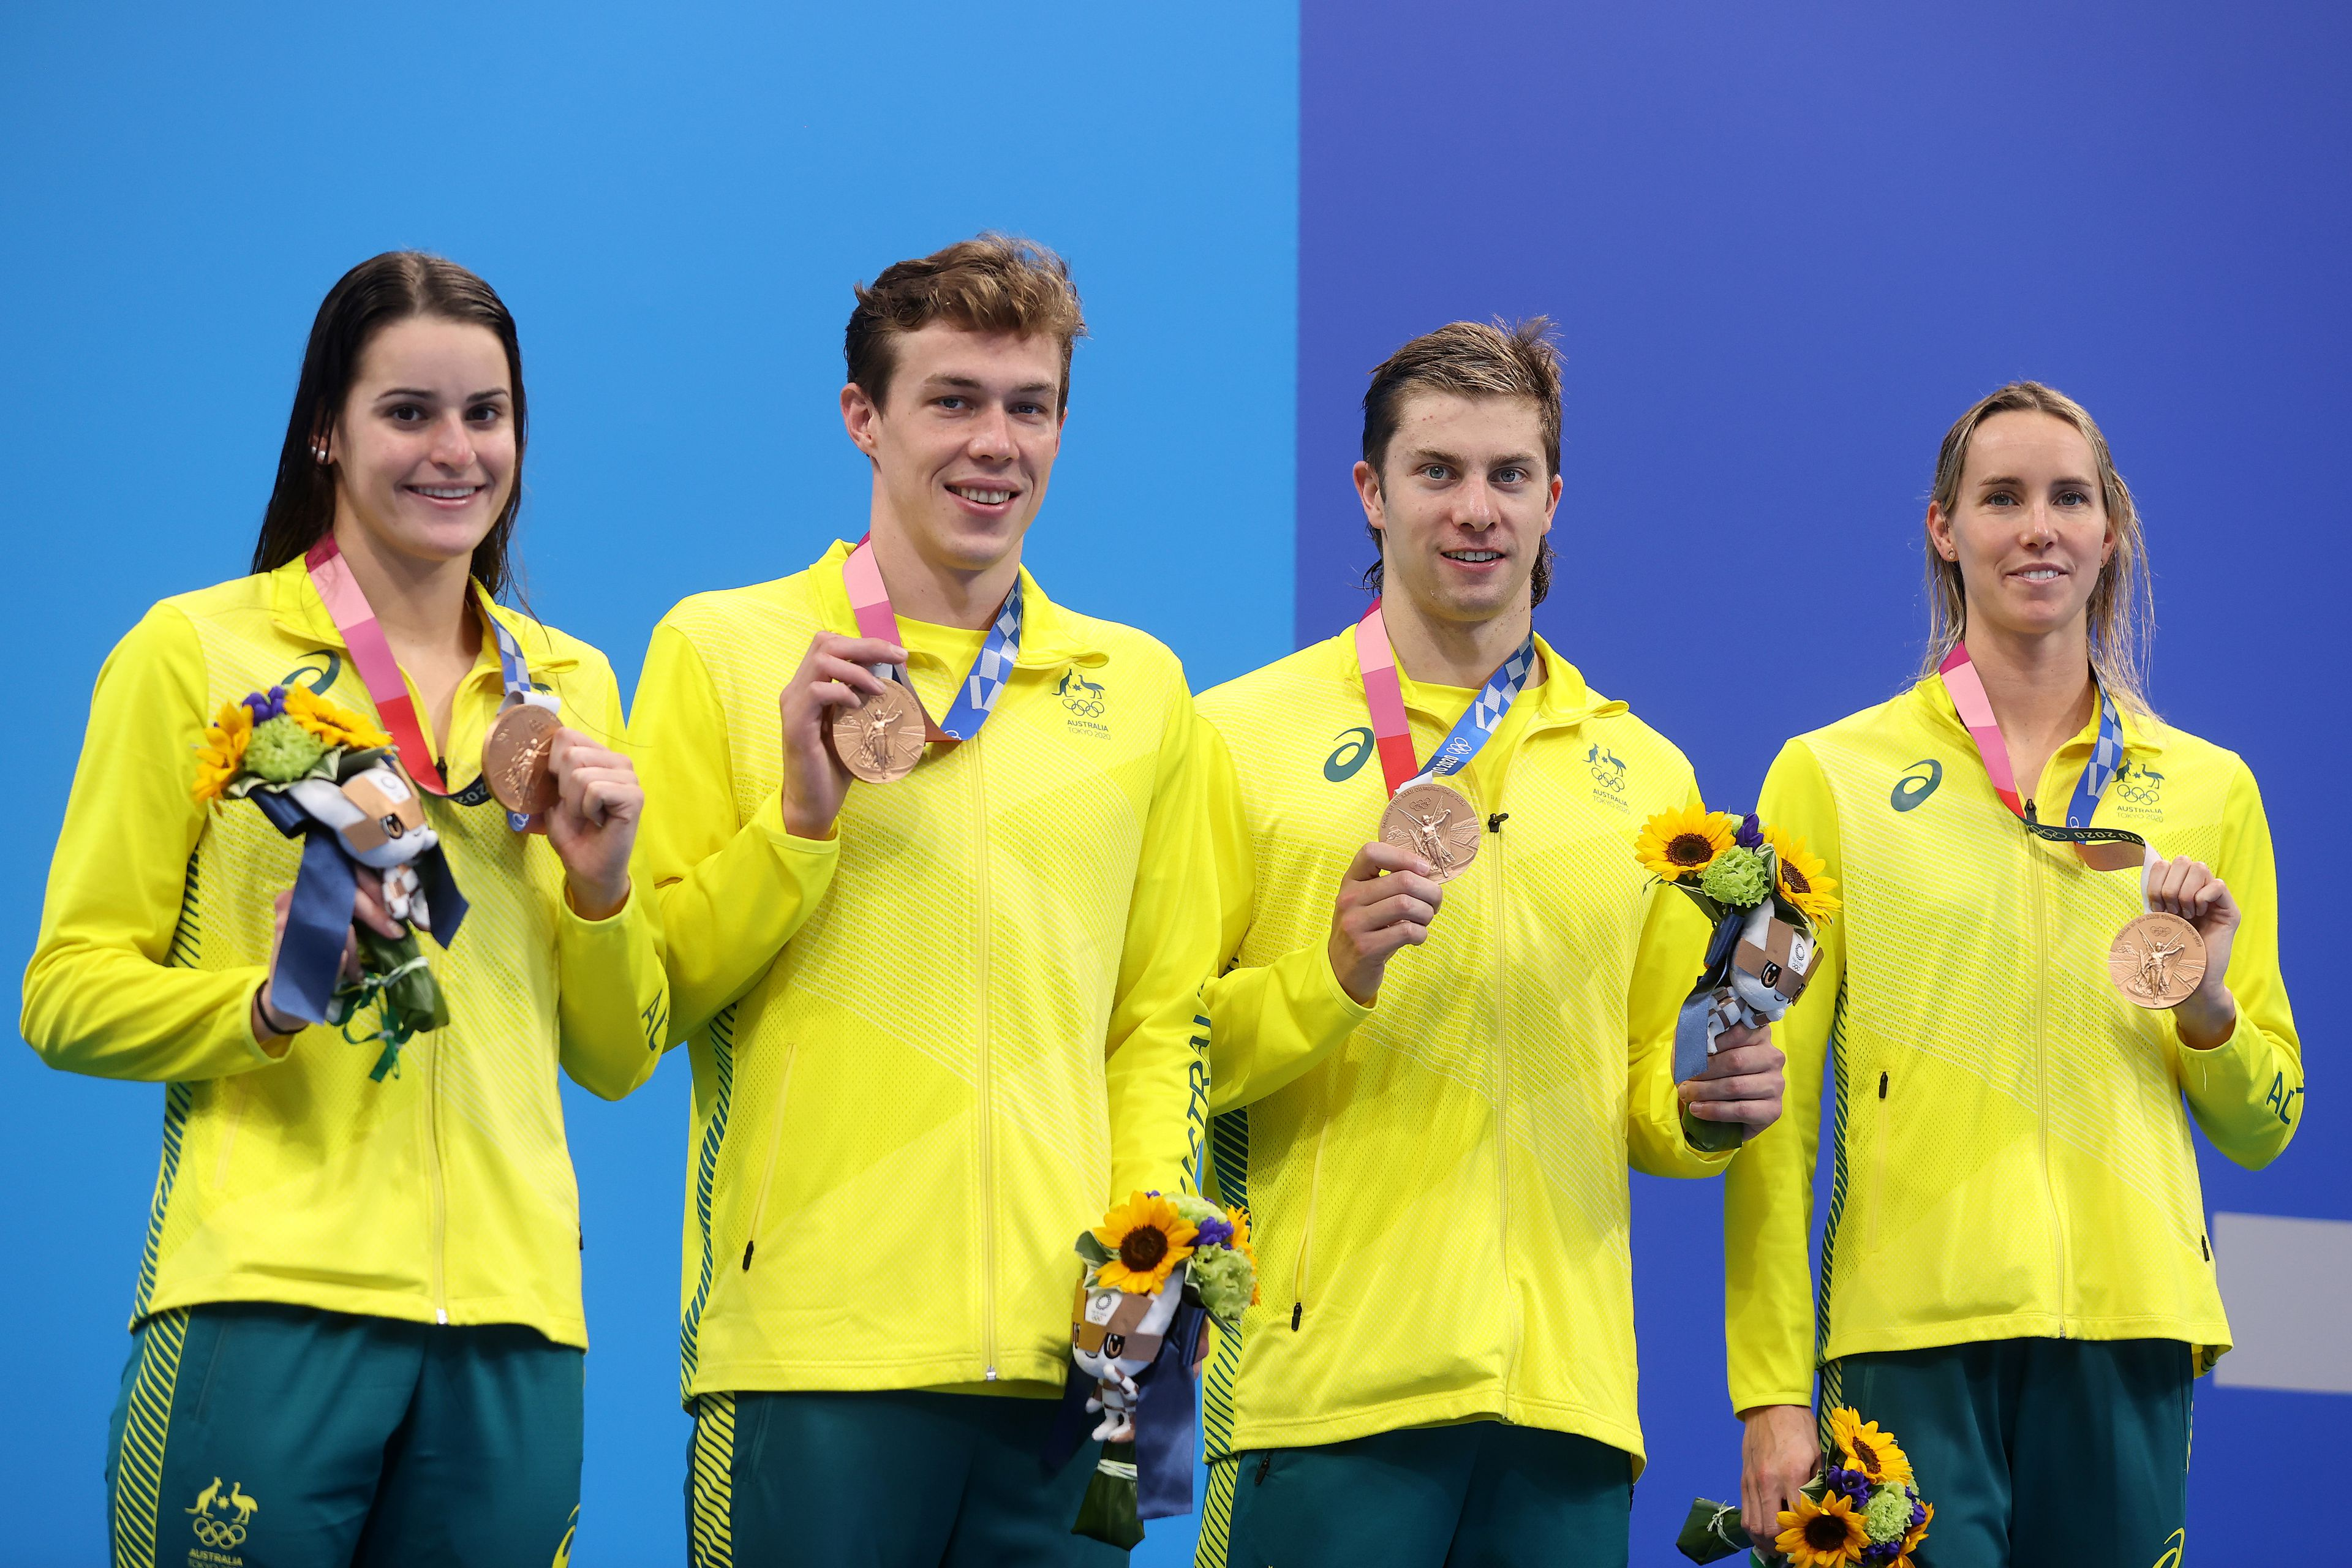 Tokyo Olympics 2021: Emma McKeon equals Australian medal record as Aussies grab bronze in 4x100 mixed medley relay